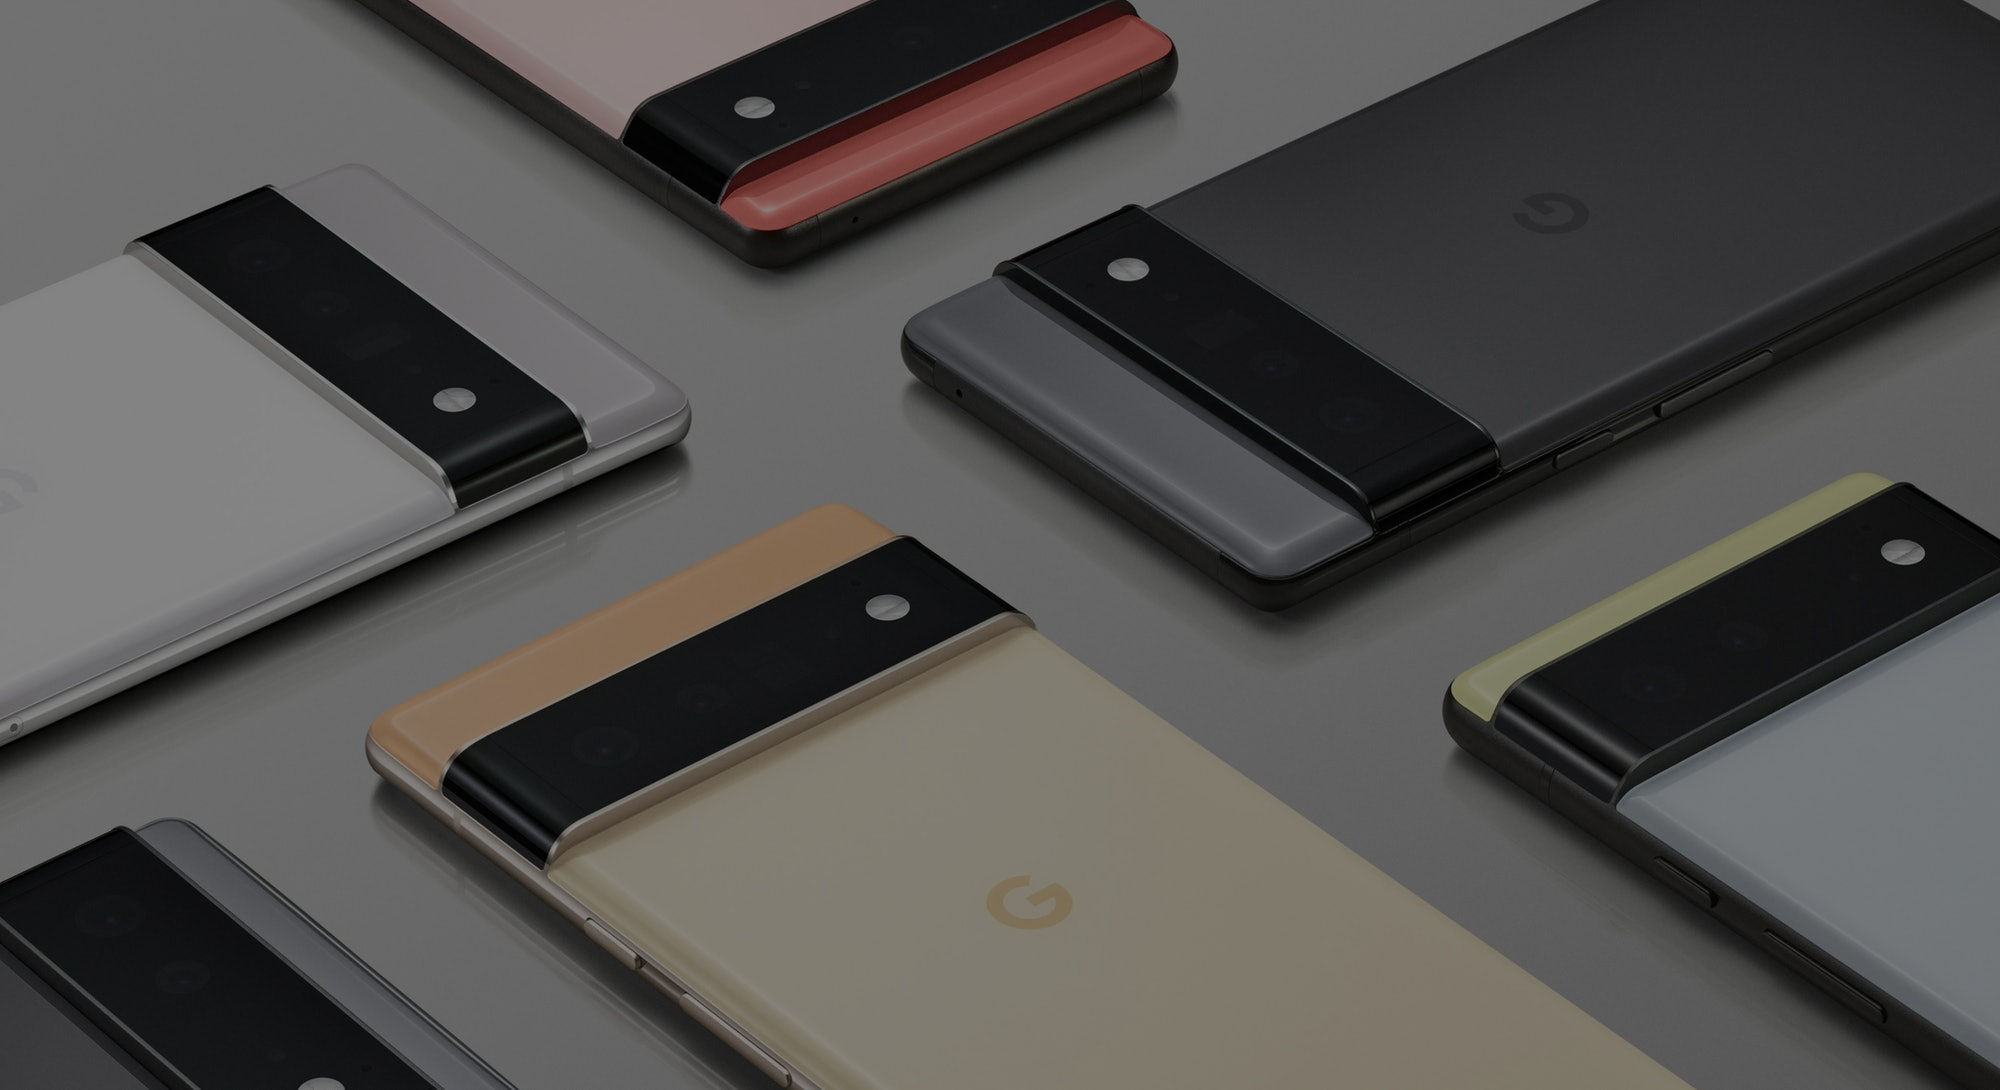 First images of Google's Pixel 6 and Pixel 6 Pro